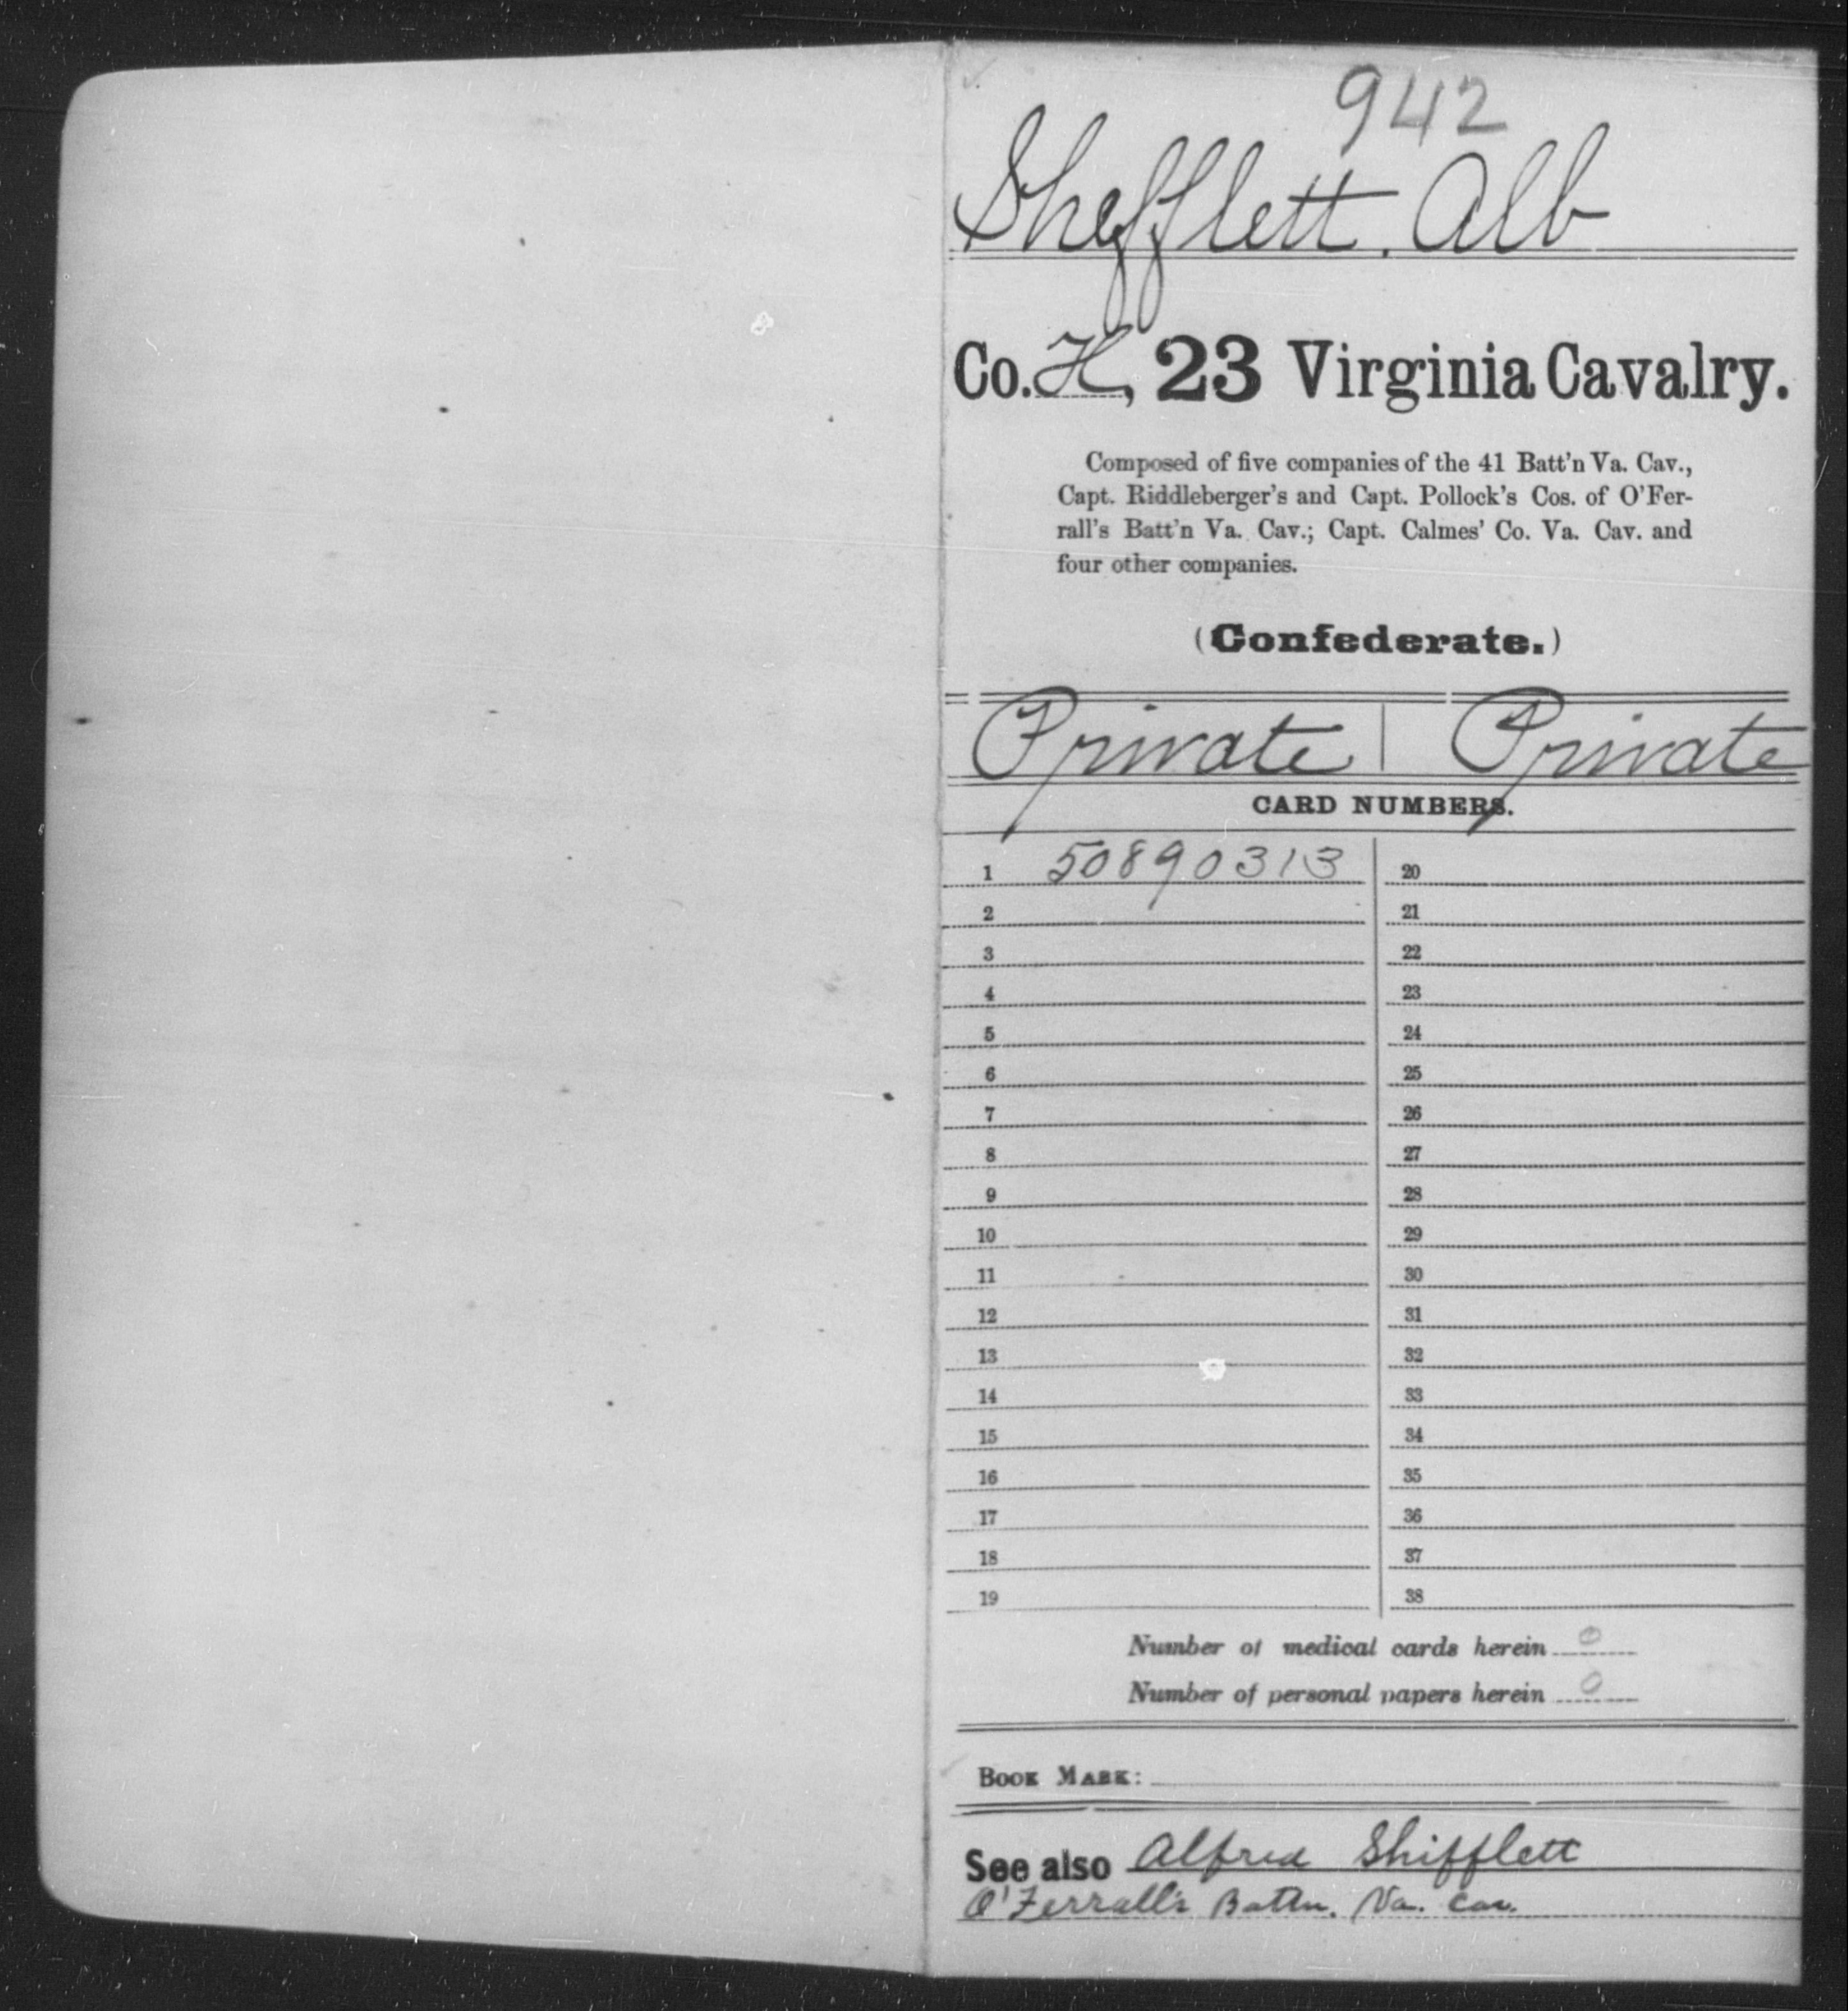 Confederate Soldiers from the State of Virginia - Shefflett, Alb - Twenty-third Cavalry